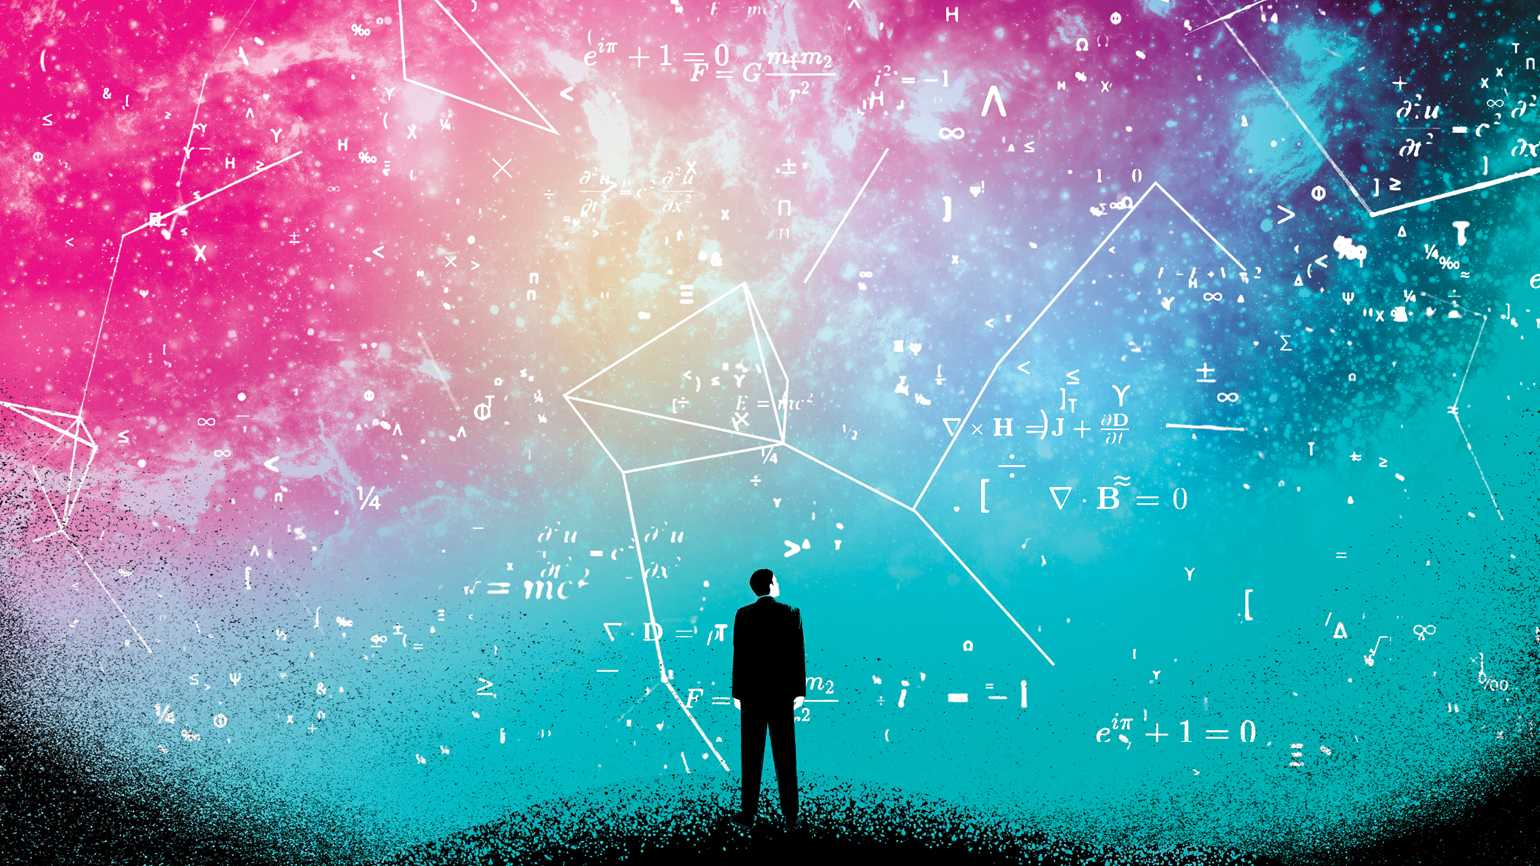 An illustration of a man looking up at a colorful sky with mathematical constellations.